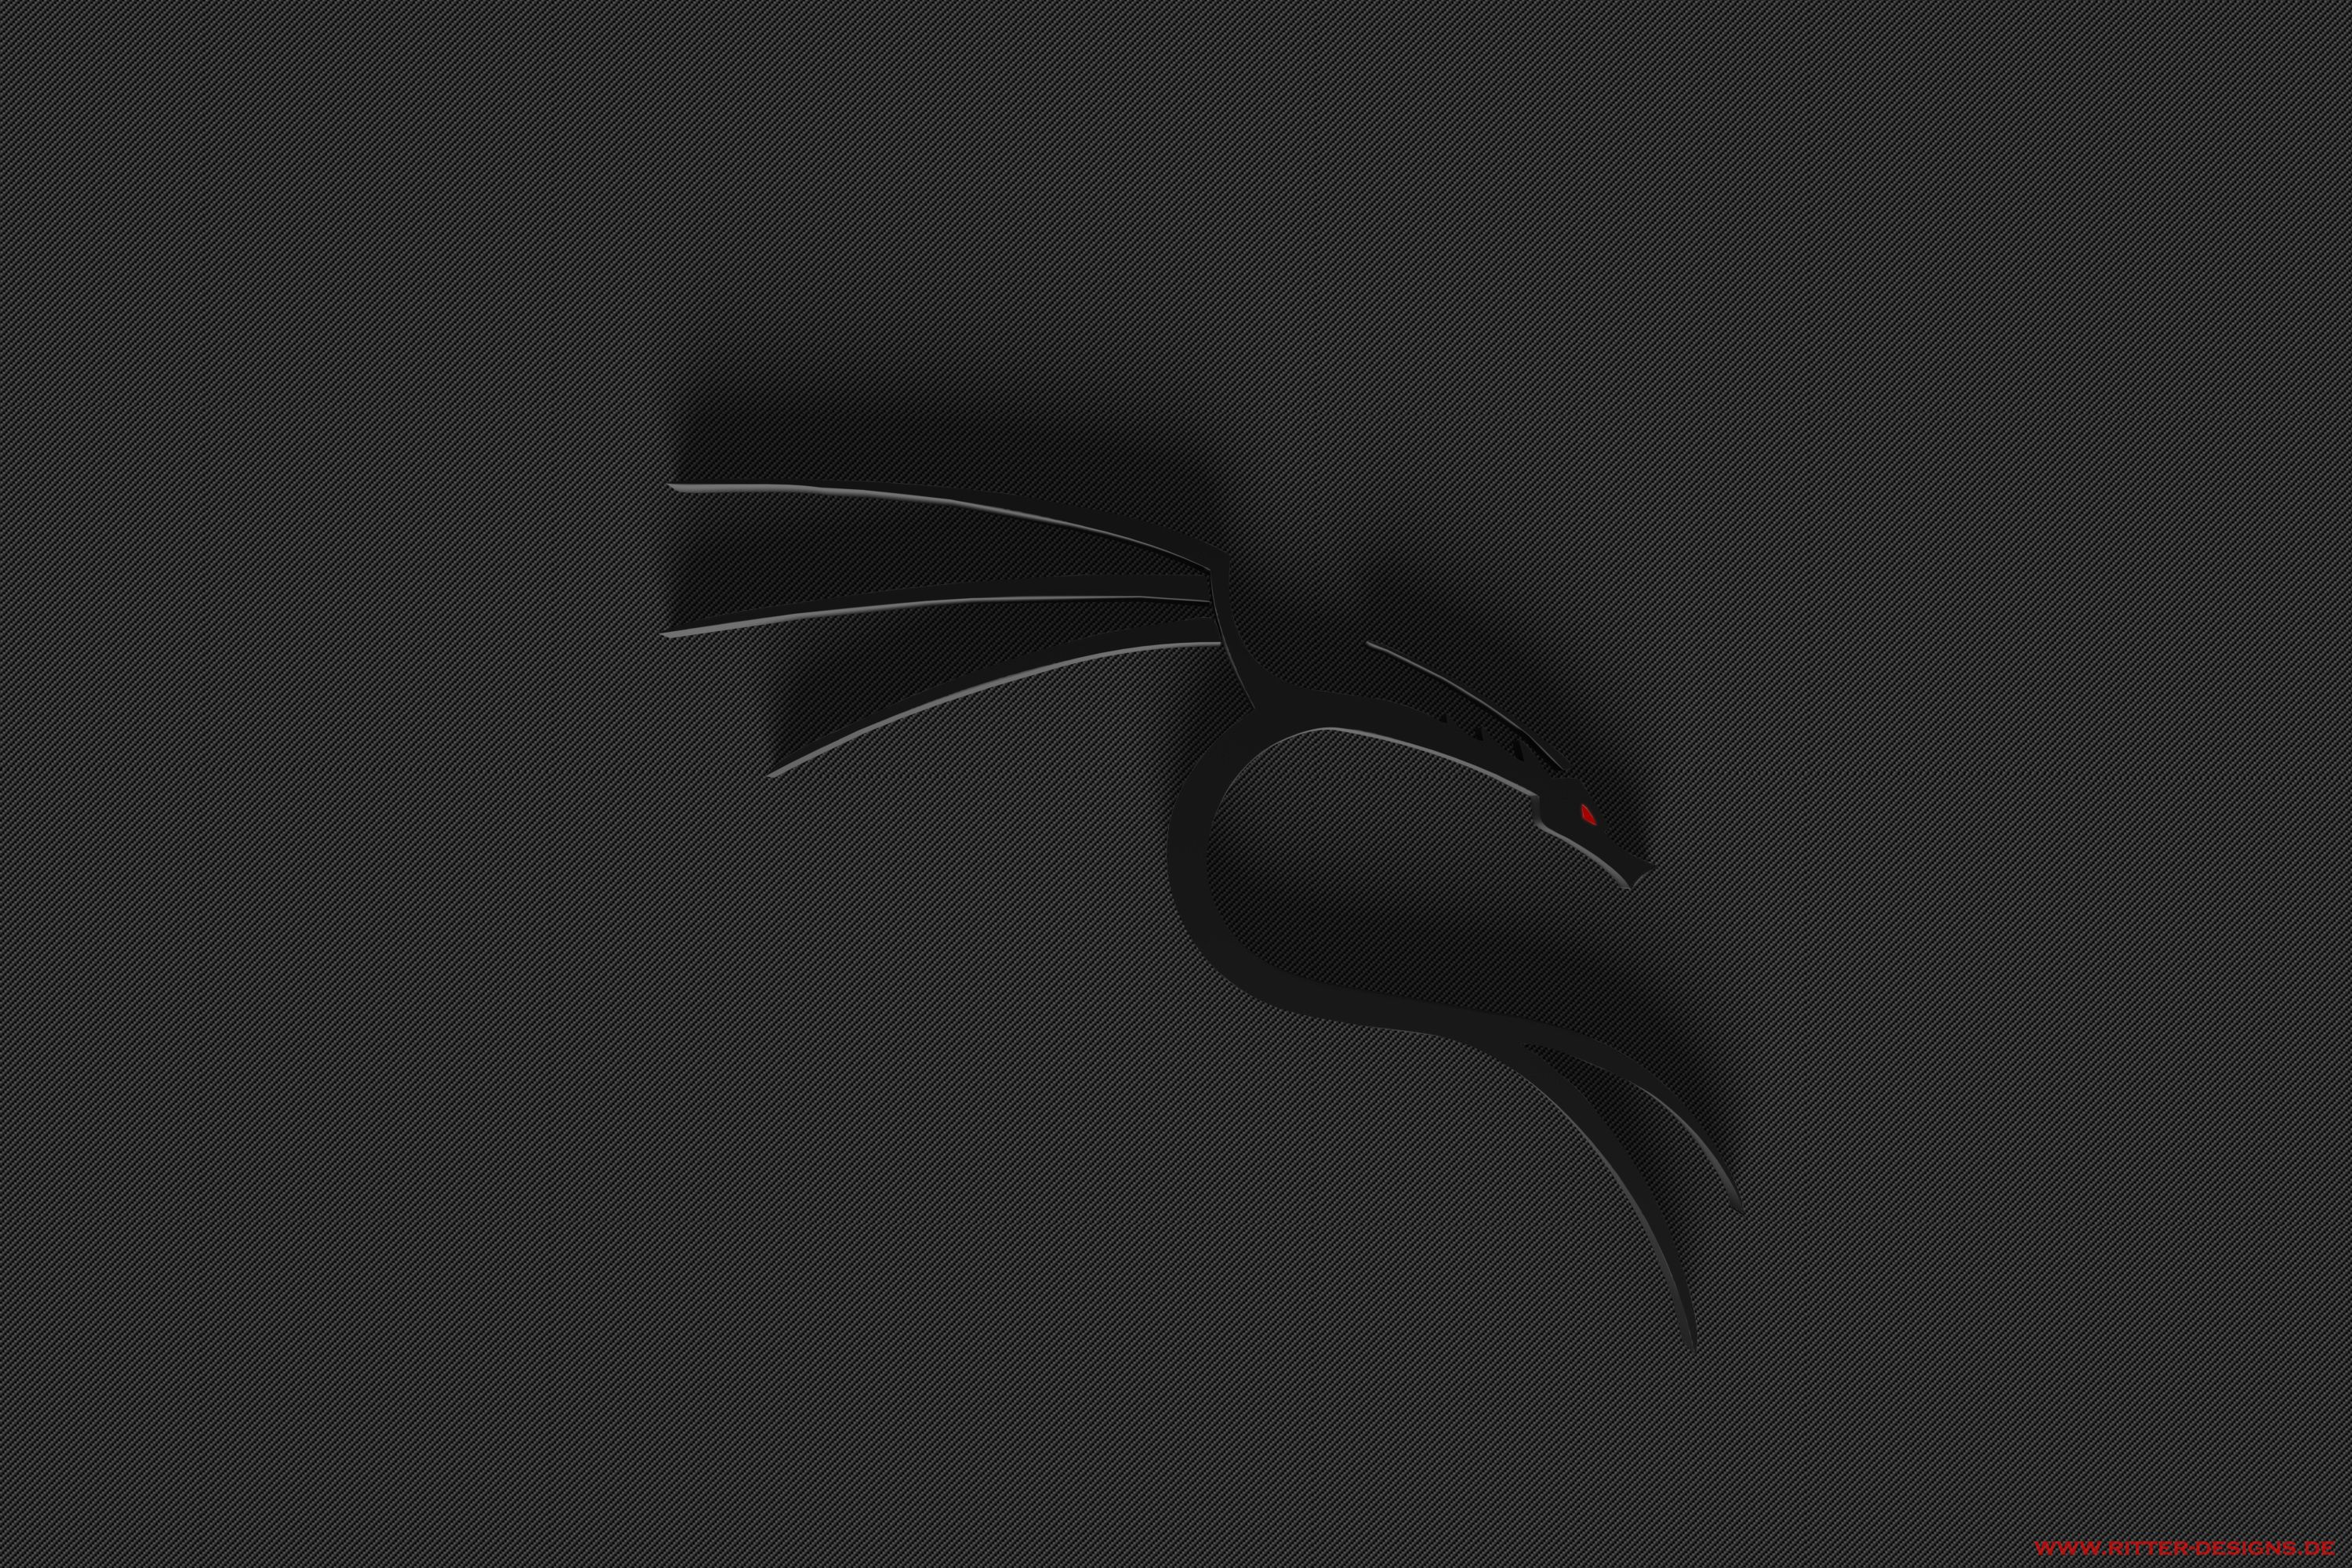 Kali Linux Wallpapers 1920x1080 Wallpaper Cave